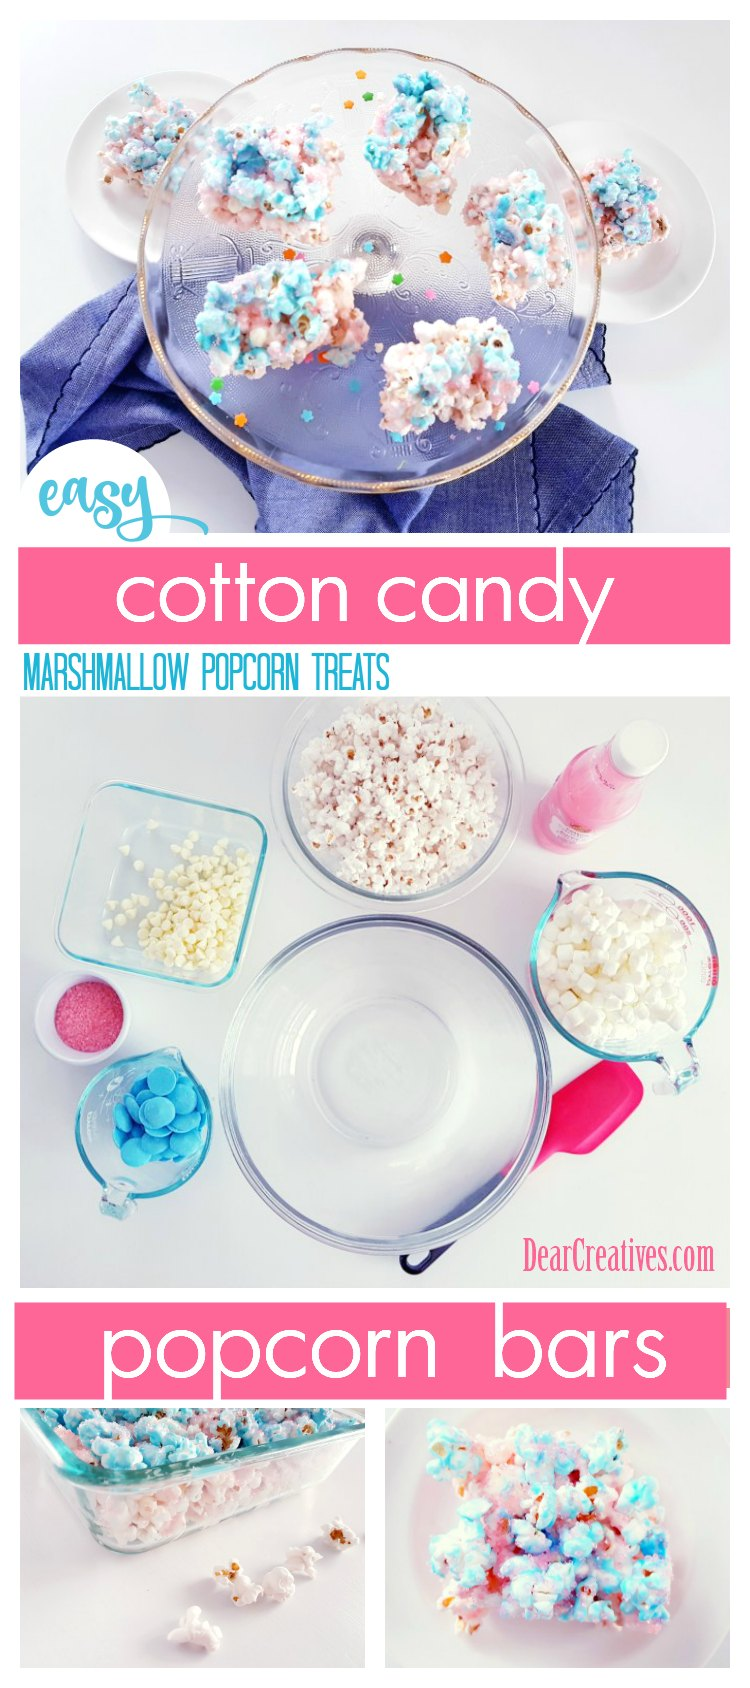 Marshmallow Popcorn Bars This is a cotton candy popcorn bars recipe. It's easy to make. just melt, and stir in add to dish. Cut up for serving. A sweet treat for any party or celebration. Grab recipe, and see how to make these popcorn treats. #popcornbars